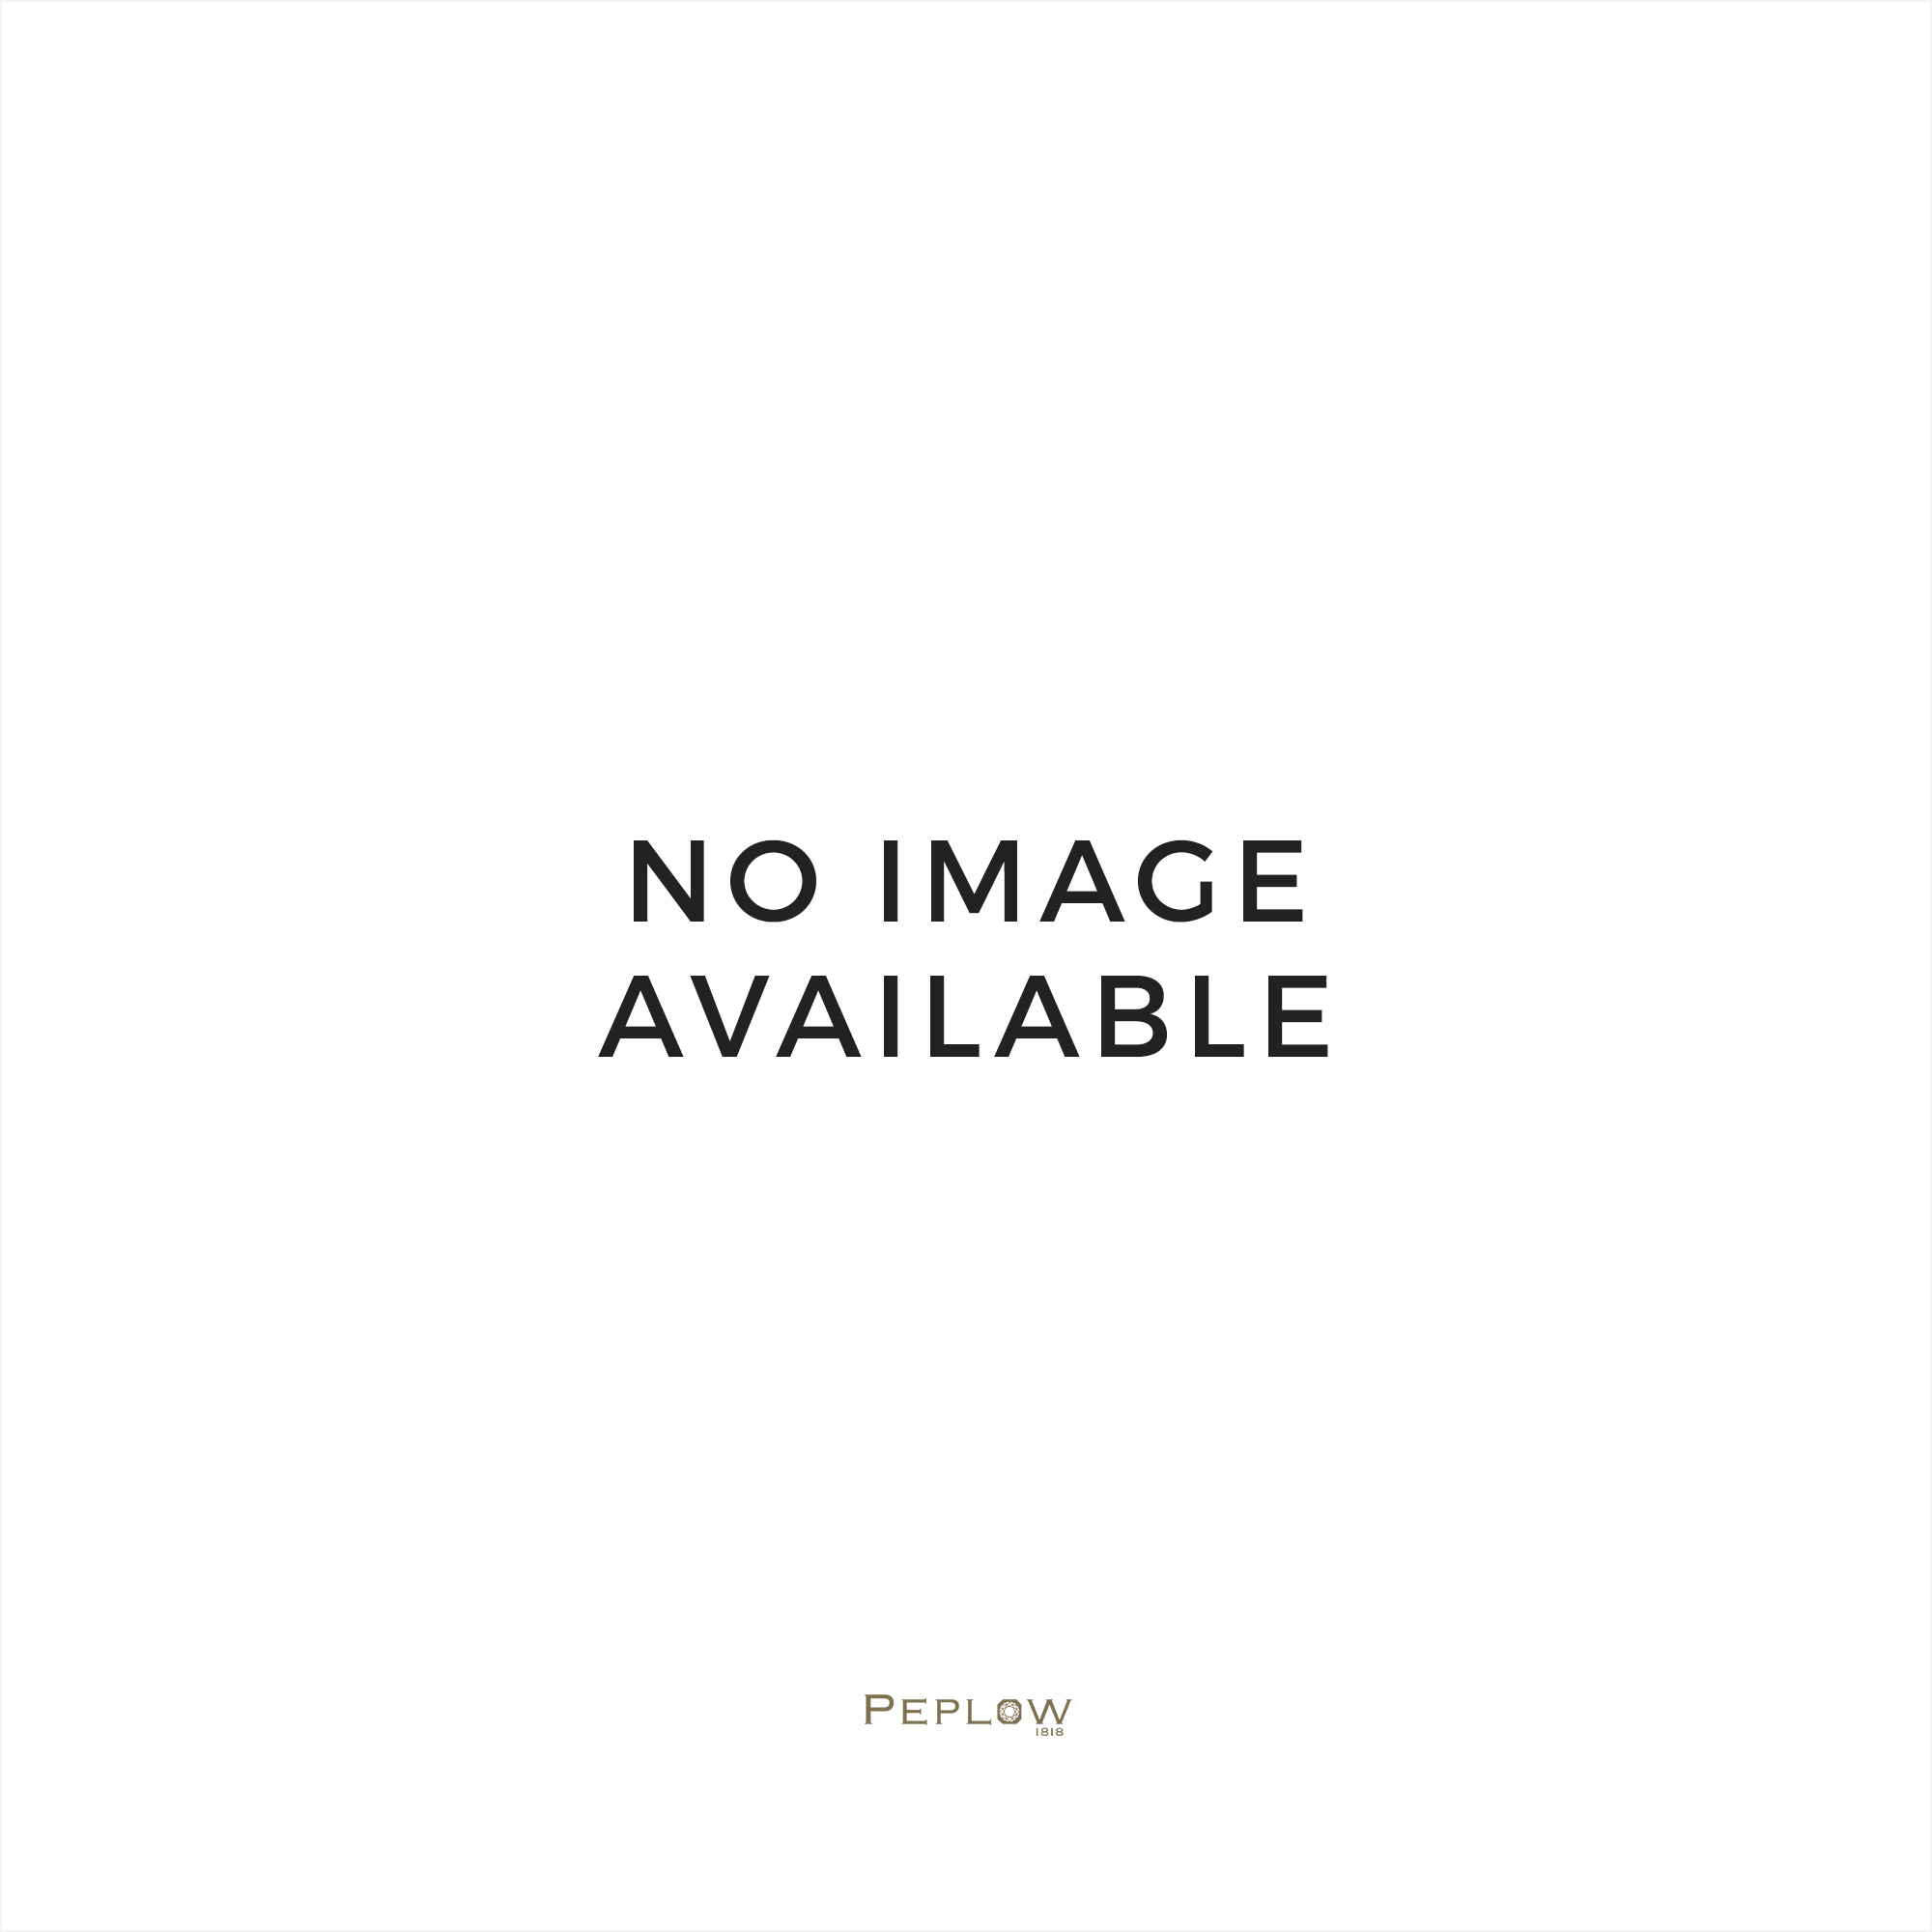 Citizen Watches Gent's Perpetual Calandar with Minute Repeater Eco Drive